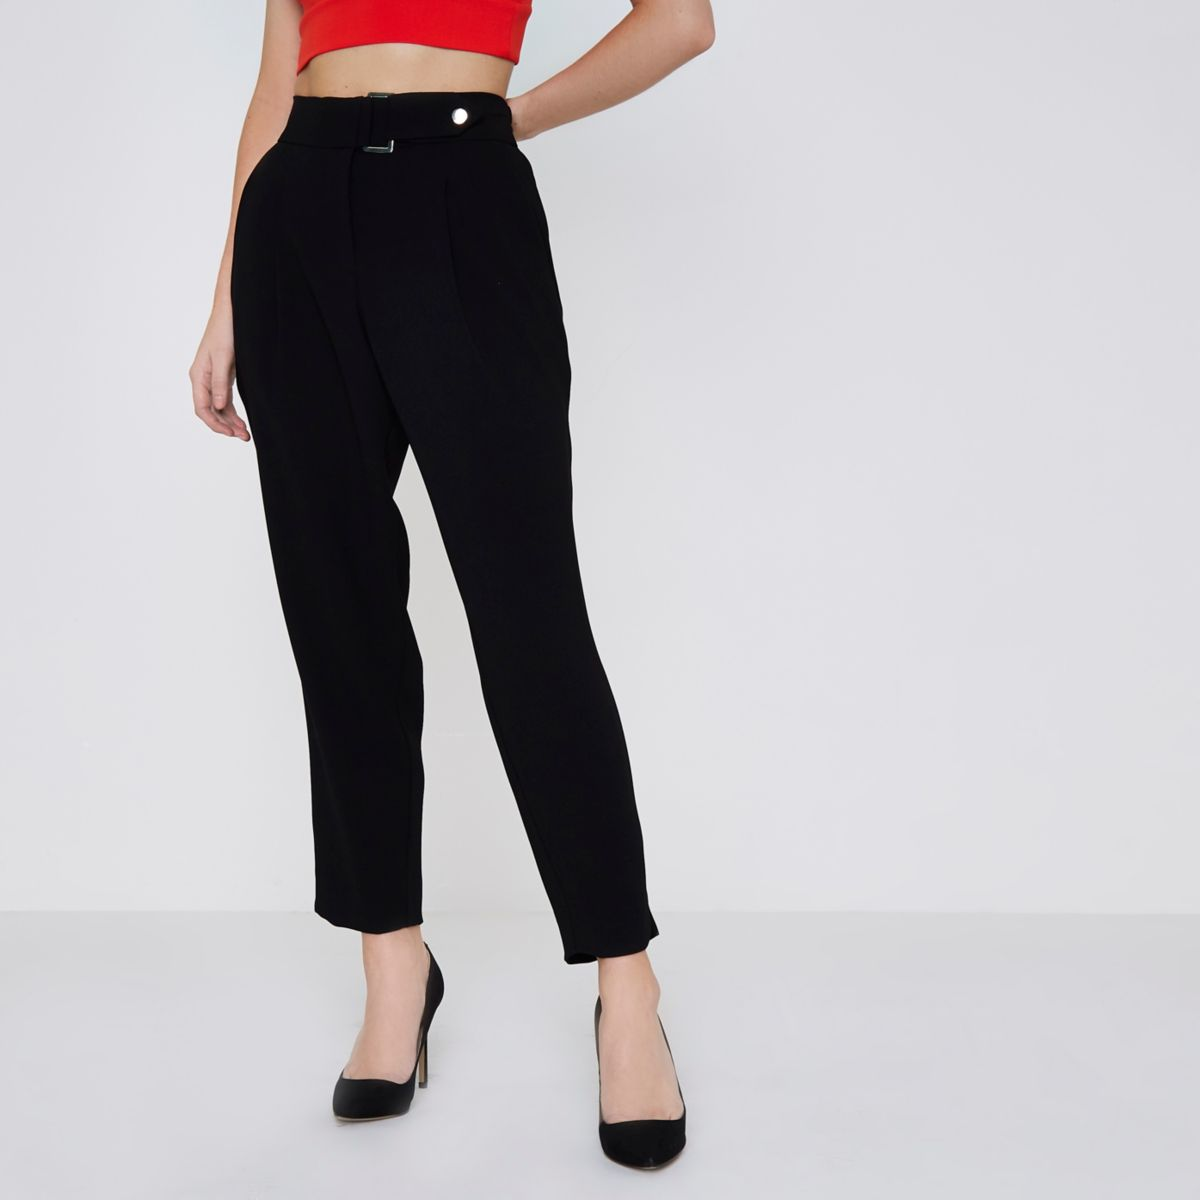 petite black dring belted tapered trousers tapered